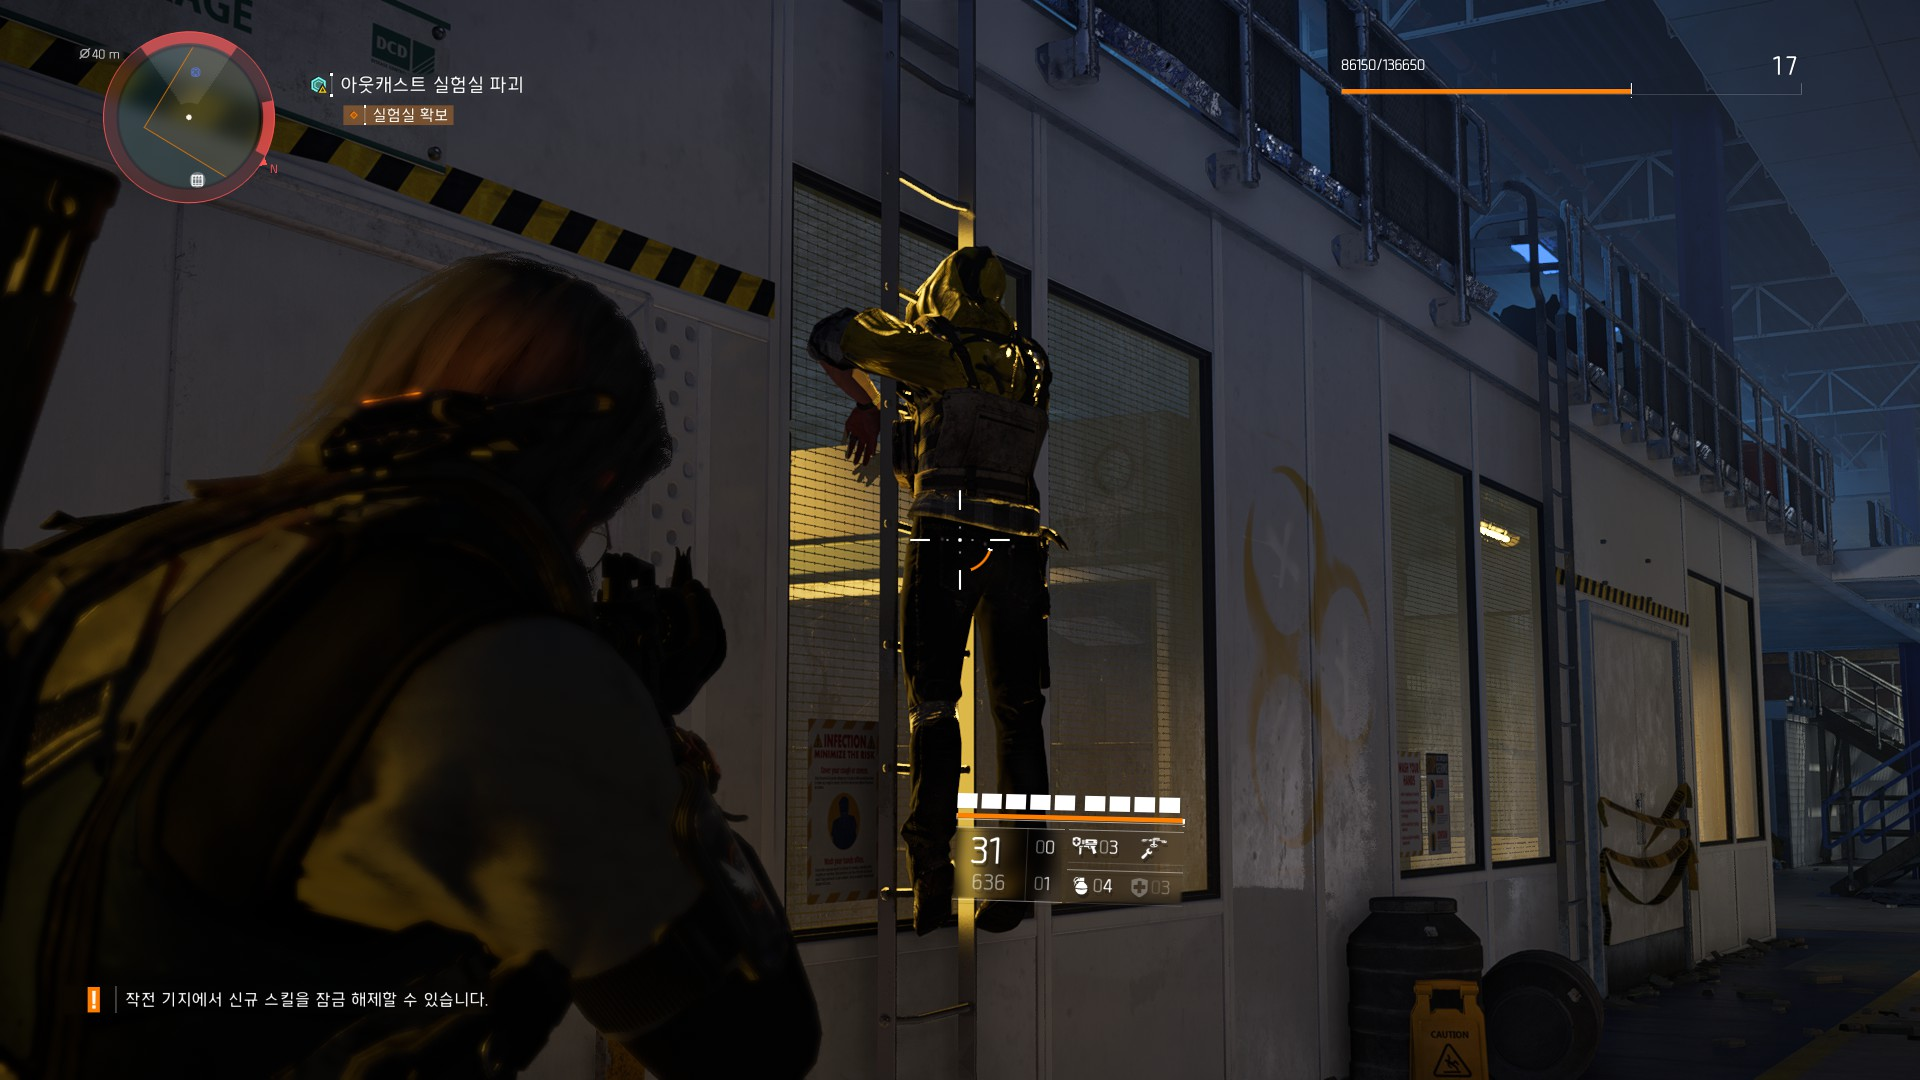 Tom Clancy's The Division® 22019-3-30-20-9-47.jpg